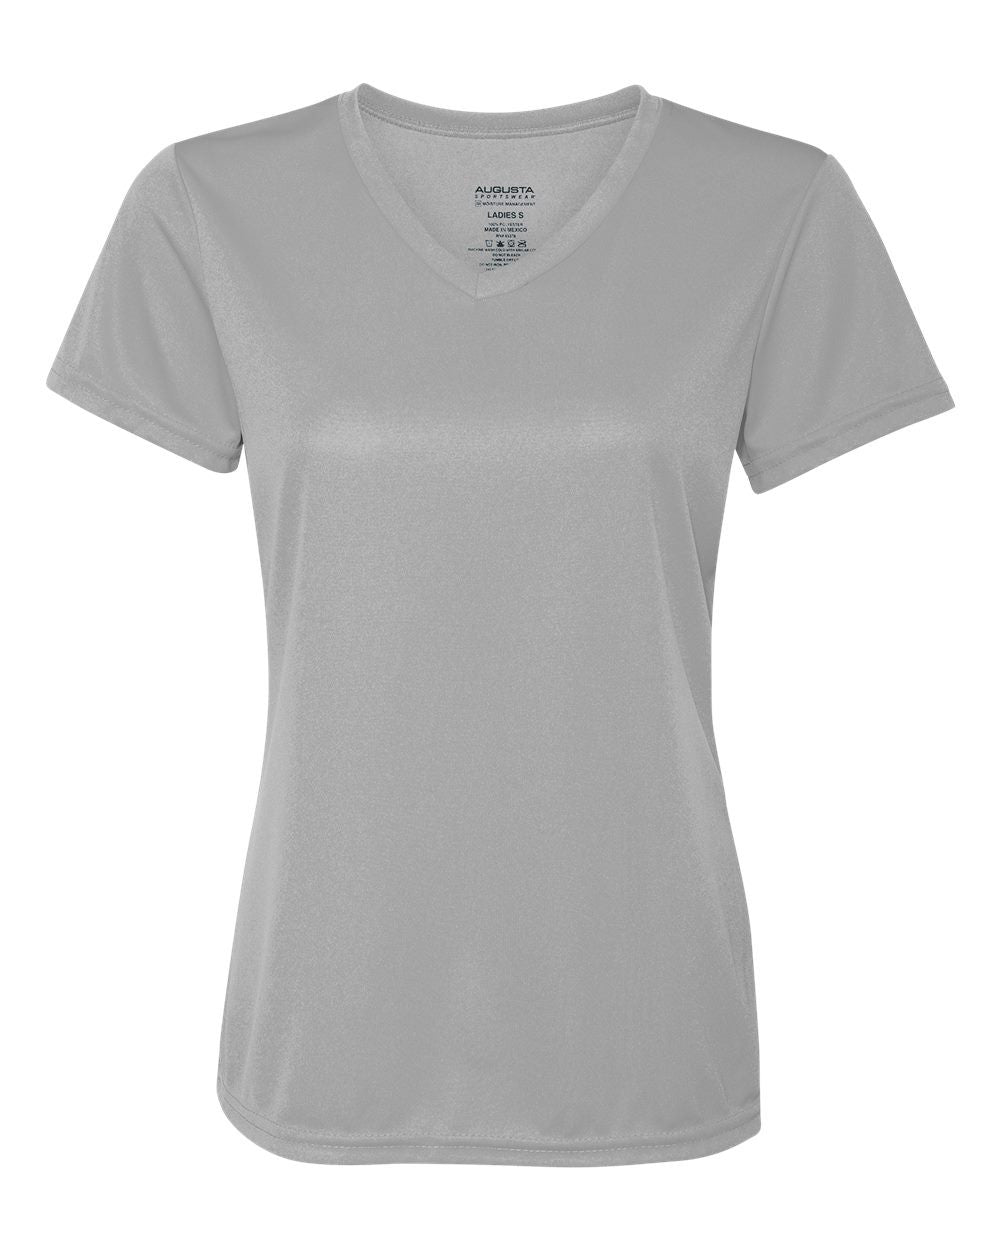 Womens Performance T-shirt - Discountedrack.com